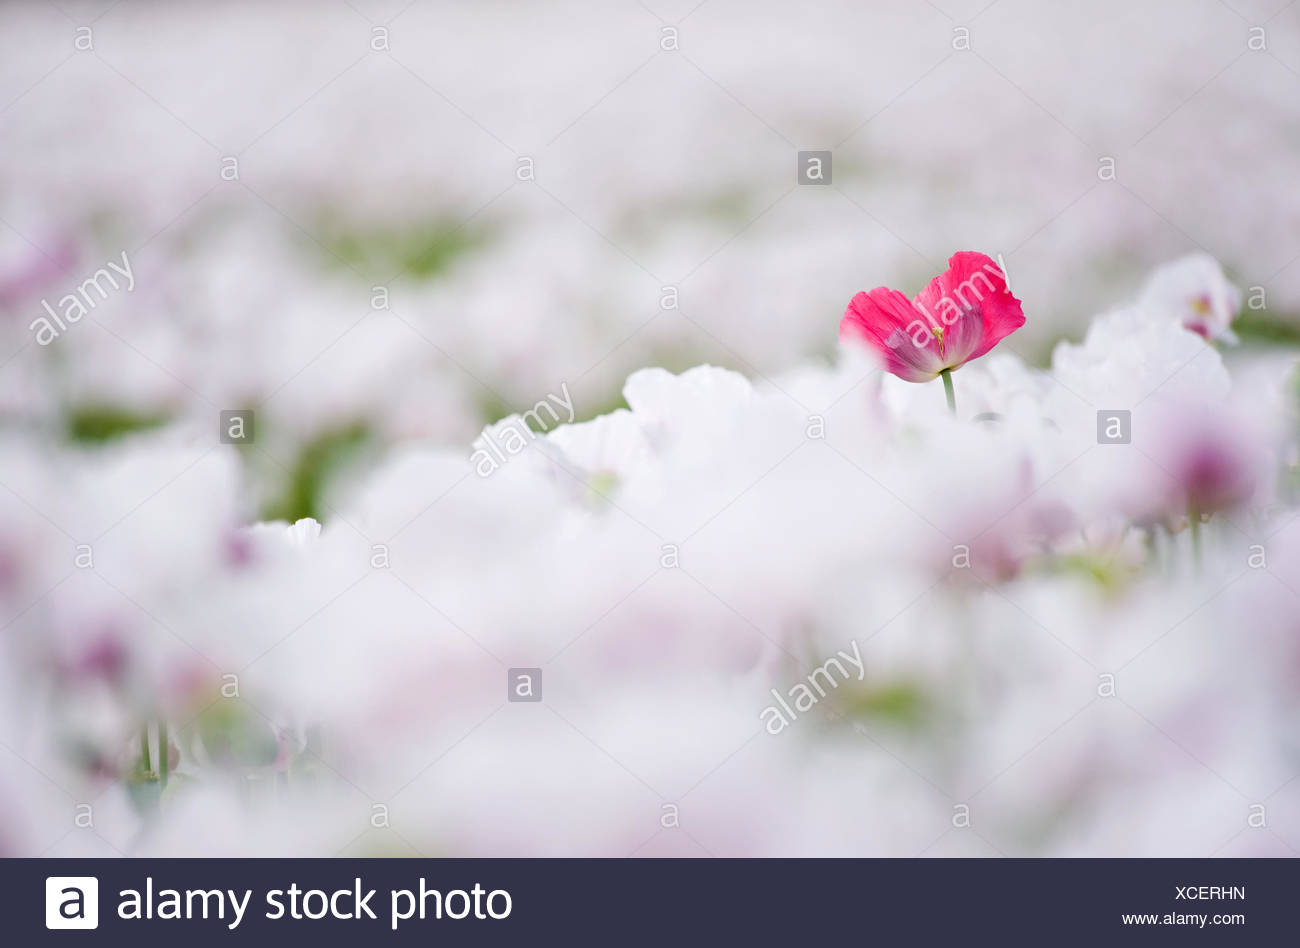 Commercial Poppy Cultivation For Seeds In The Netherlands With One